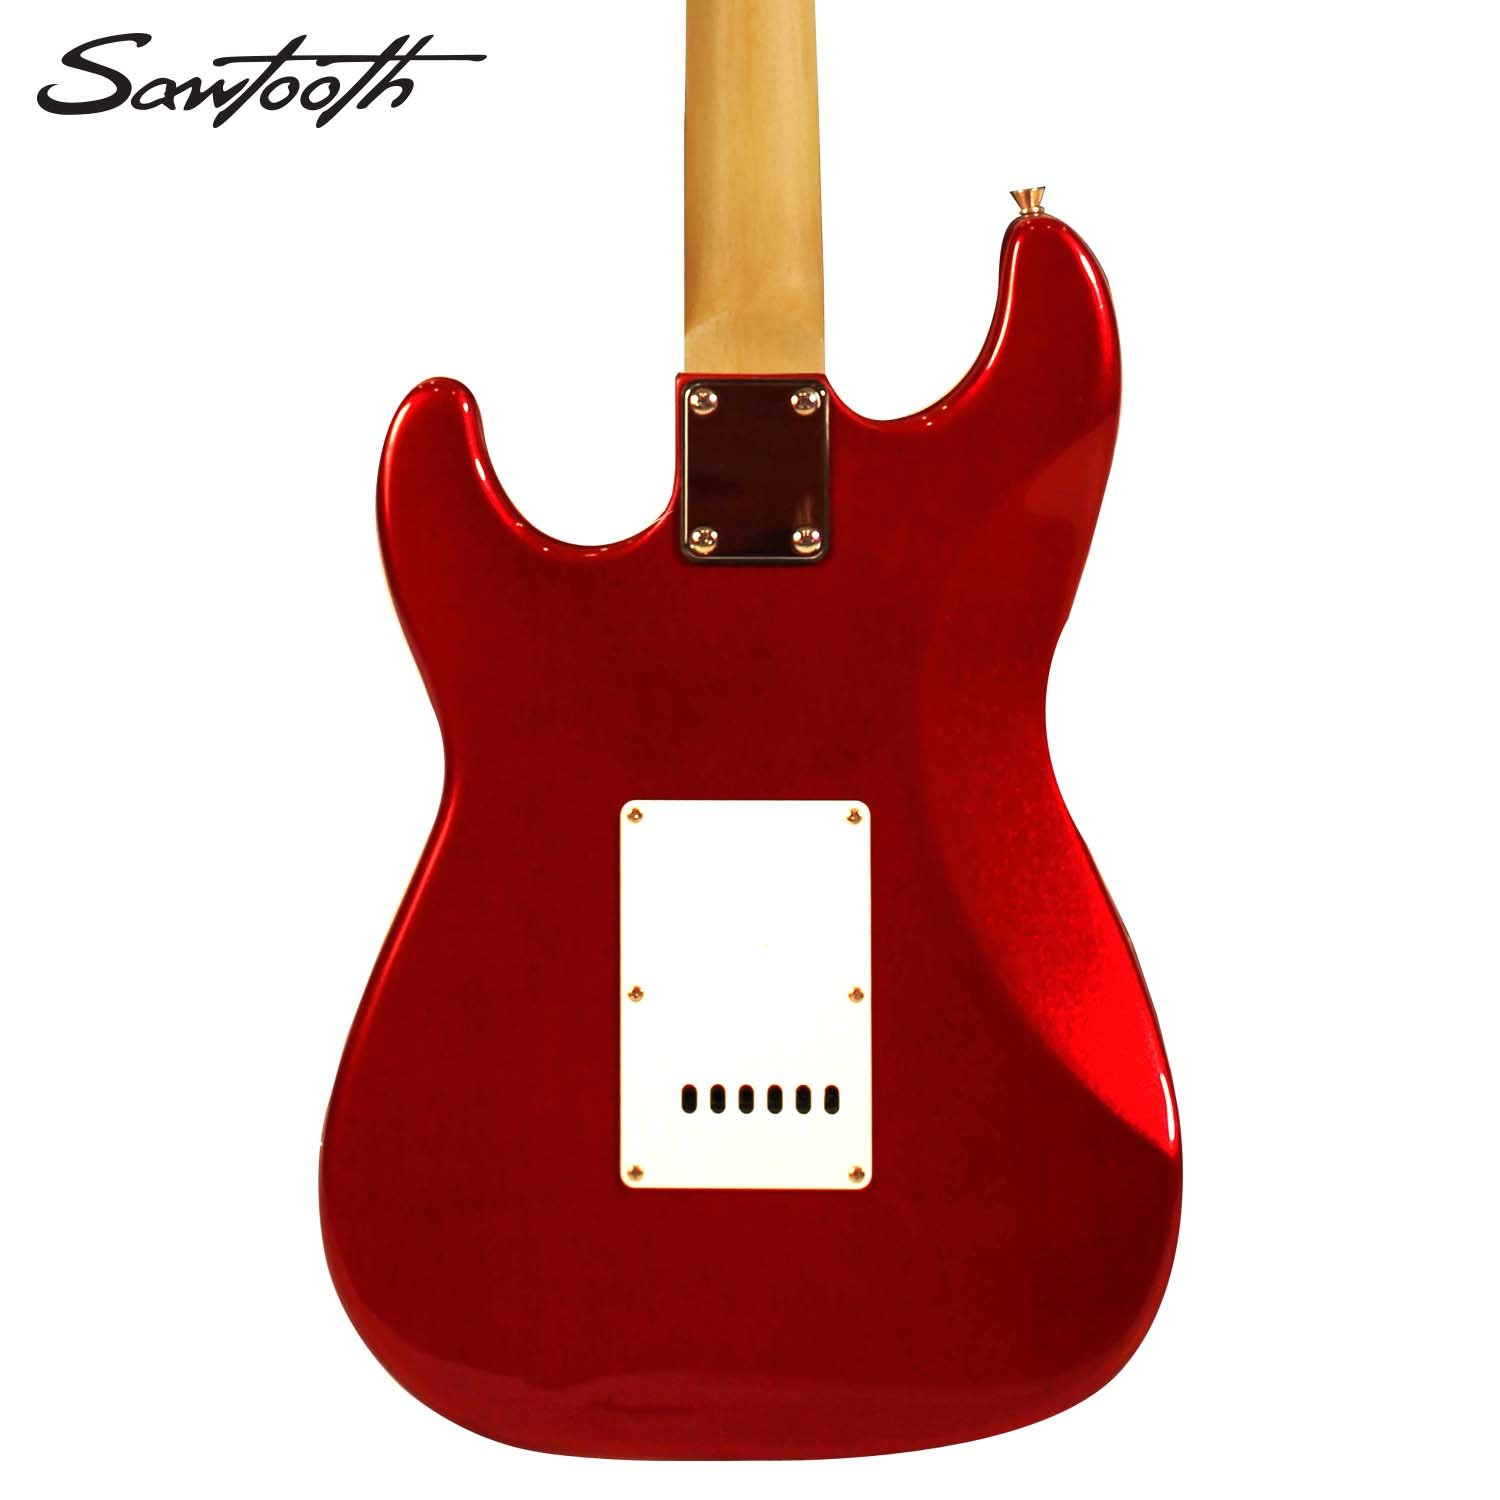 Sawtooth St Es Carp Kit 2 Candy Apple Red Electric Wiring Diagram Stratocaster Whammy Bar Guitar With Pearl White Pickguard Includes Accessories Gig Bag And Online Lesson Musical